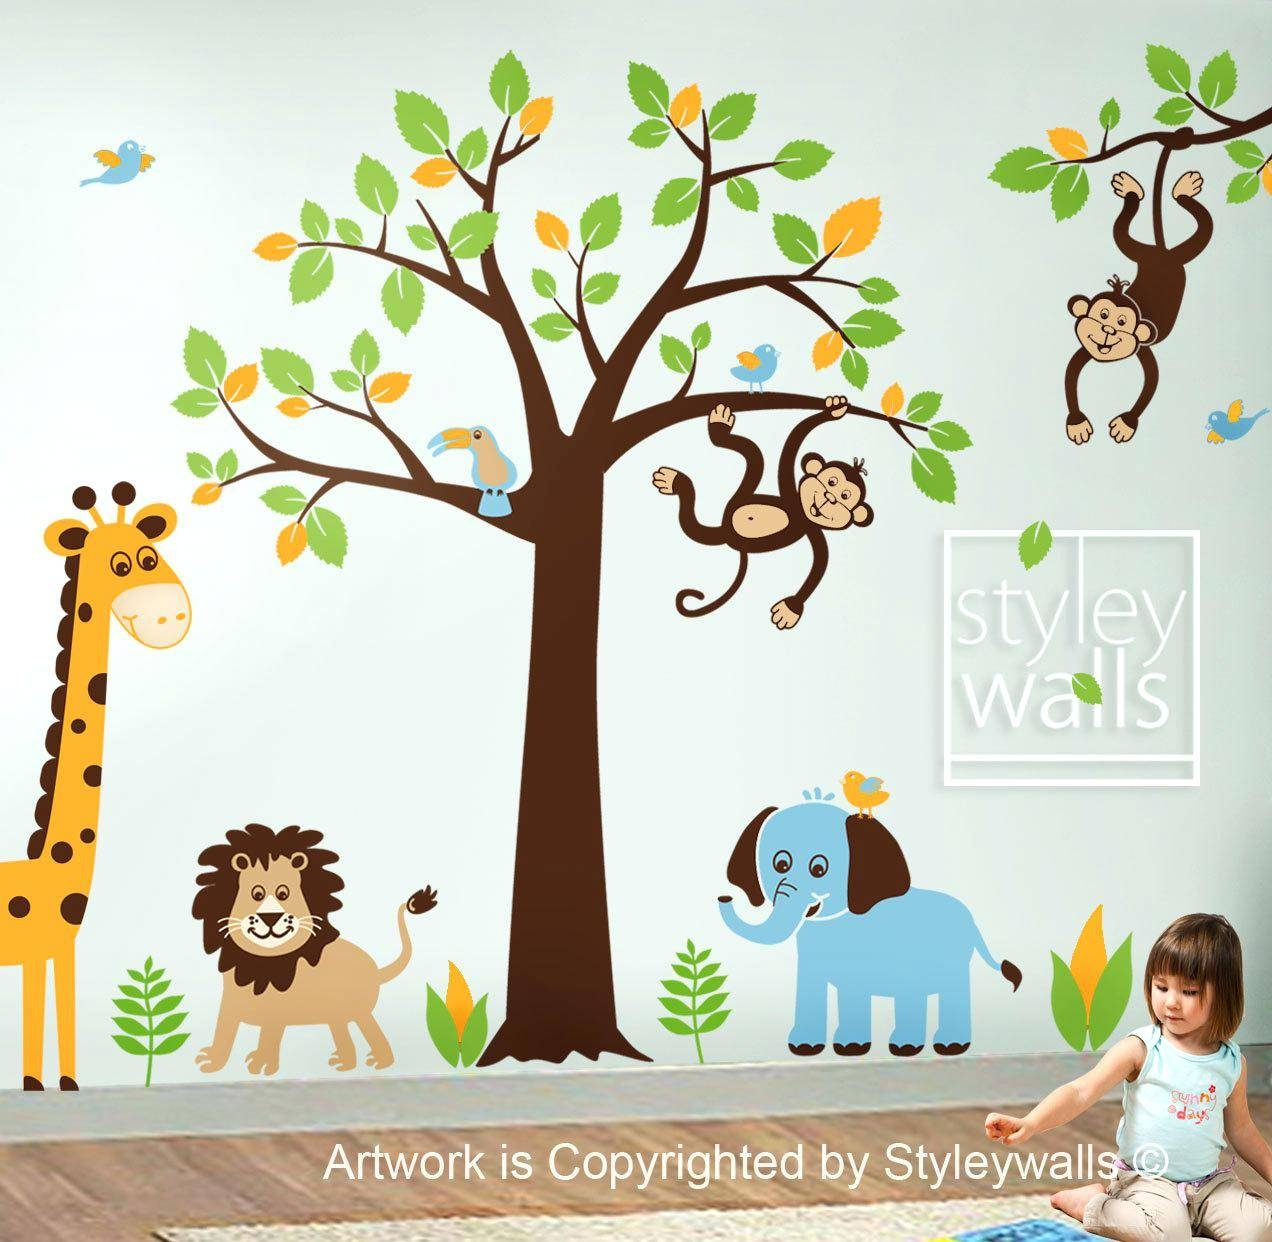 Baby Jungle Wall Decals Deluxe Safari Nursery Wall Art Stickers Intended For Current Jungle animal Wall Art (View 16 of 20)